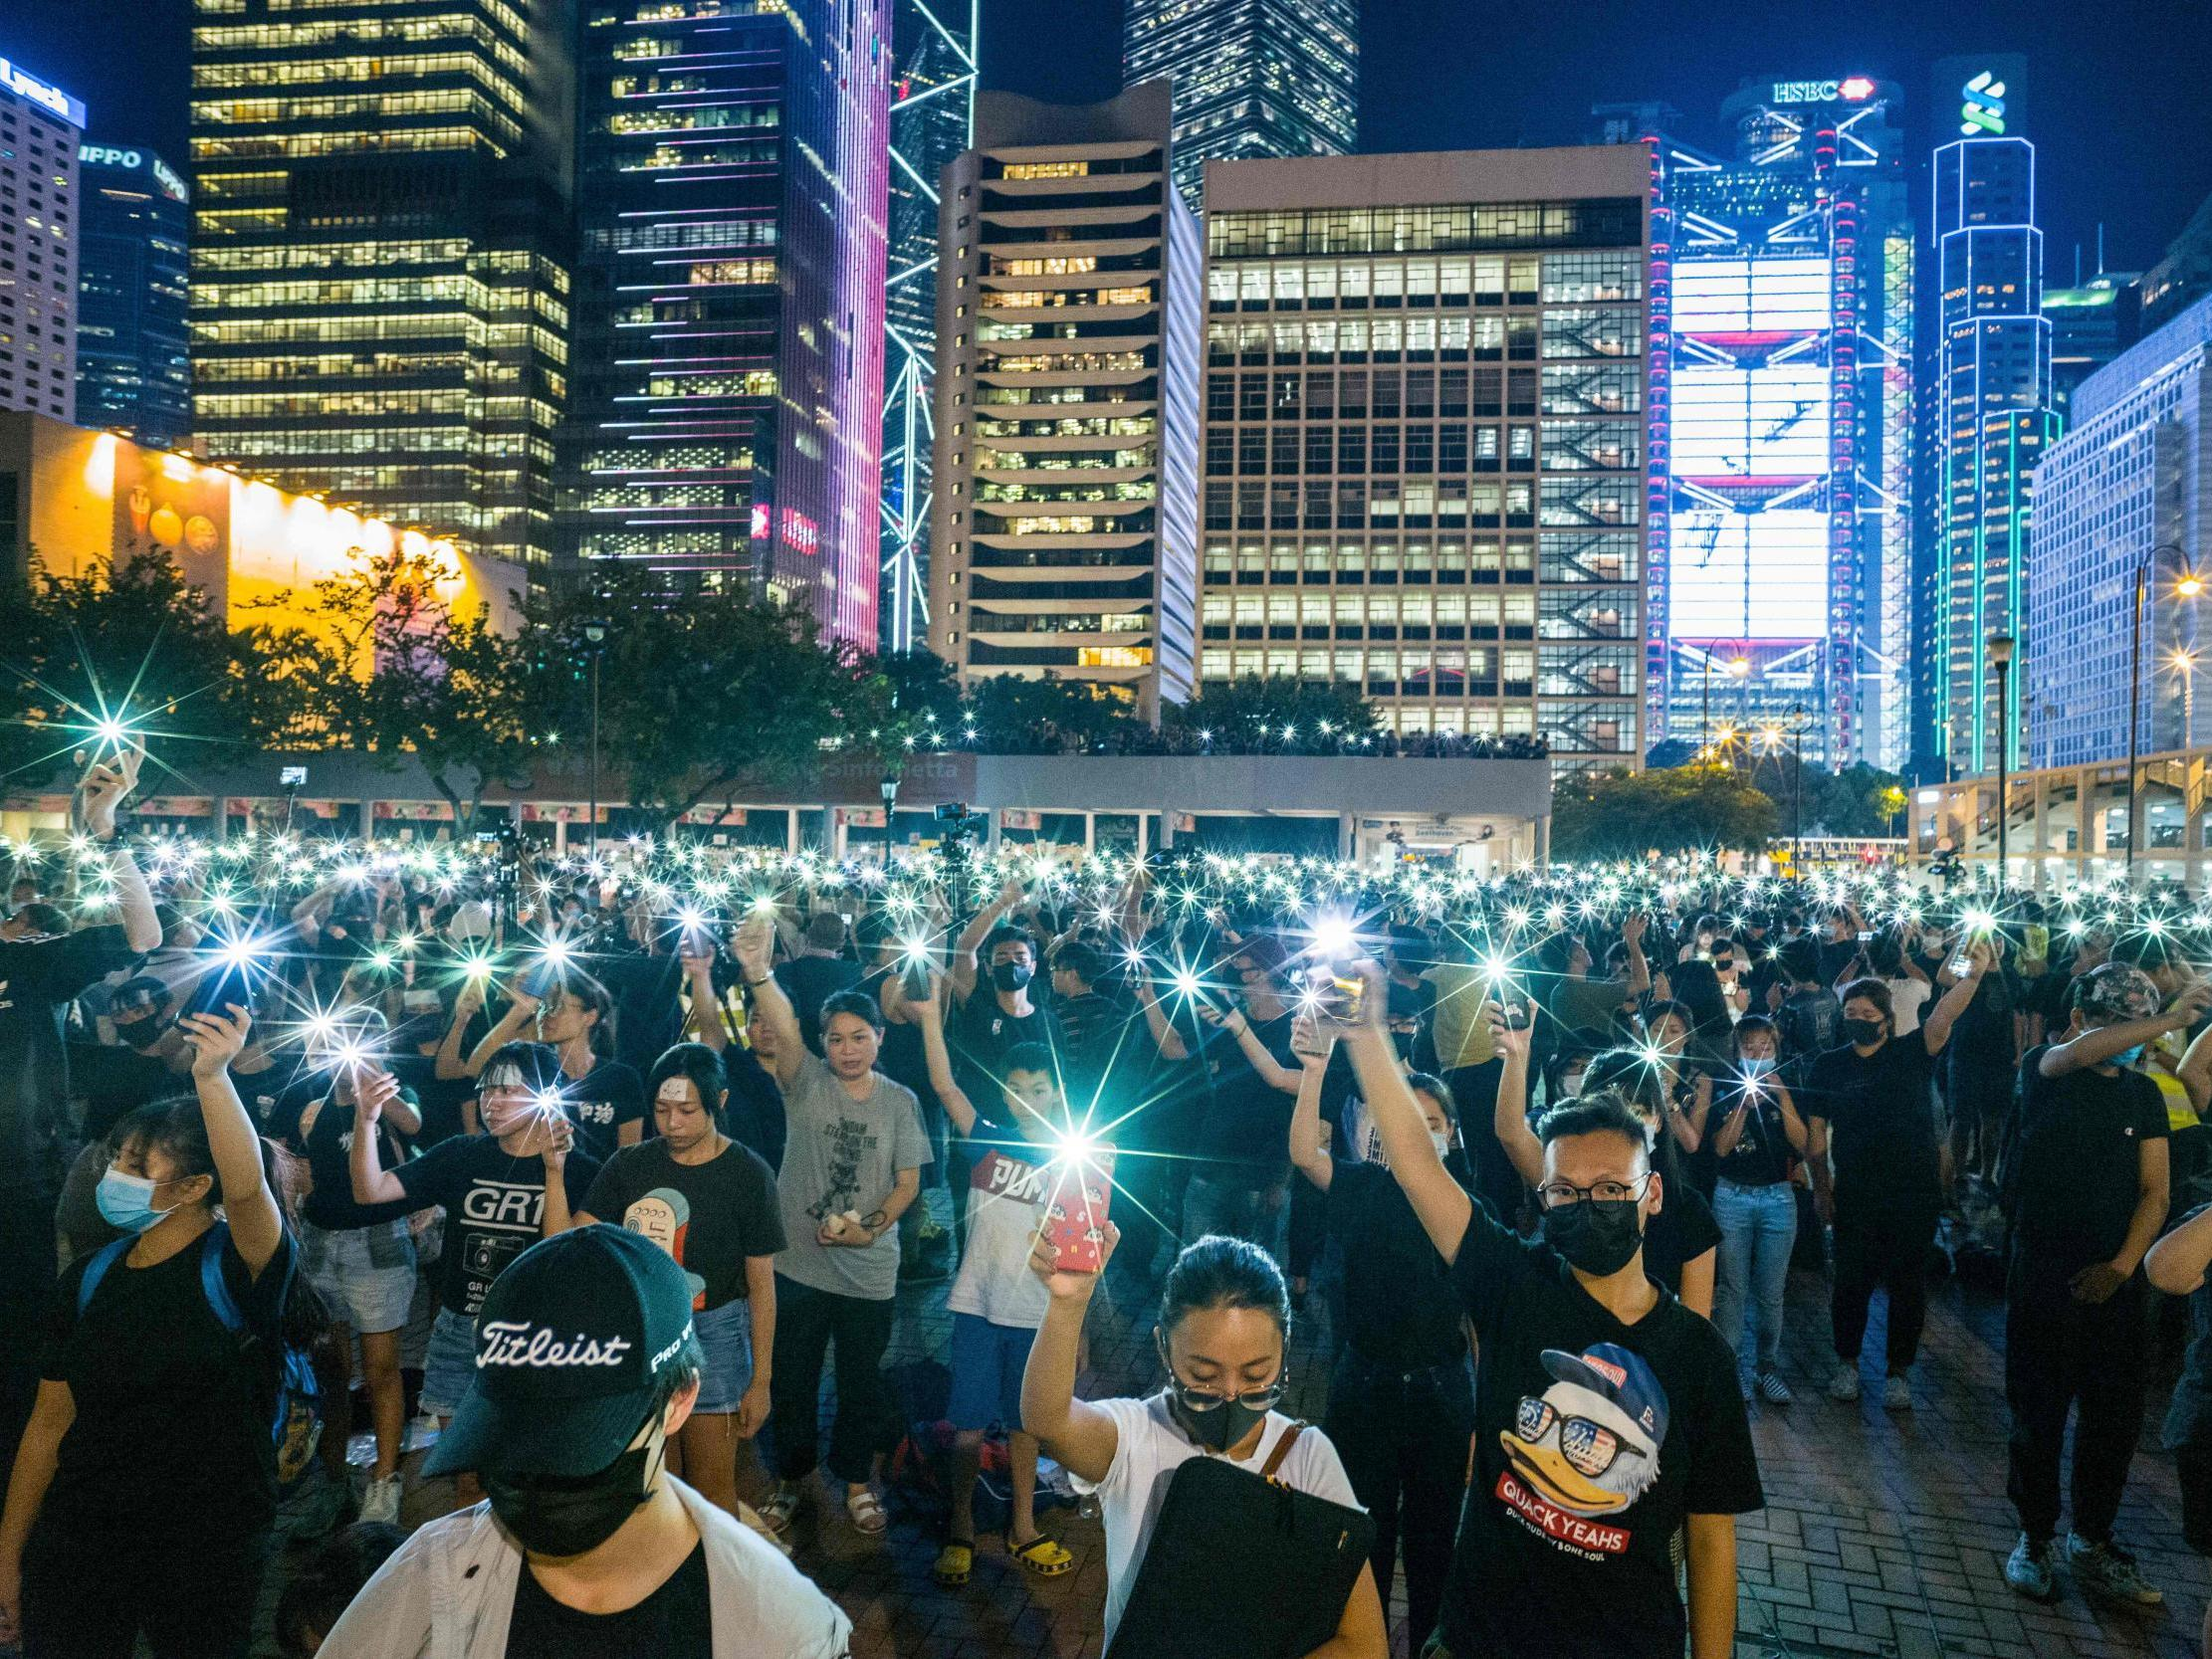 The song from Les Miserables that has become a protest anthem in Hong Kong